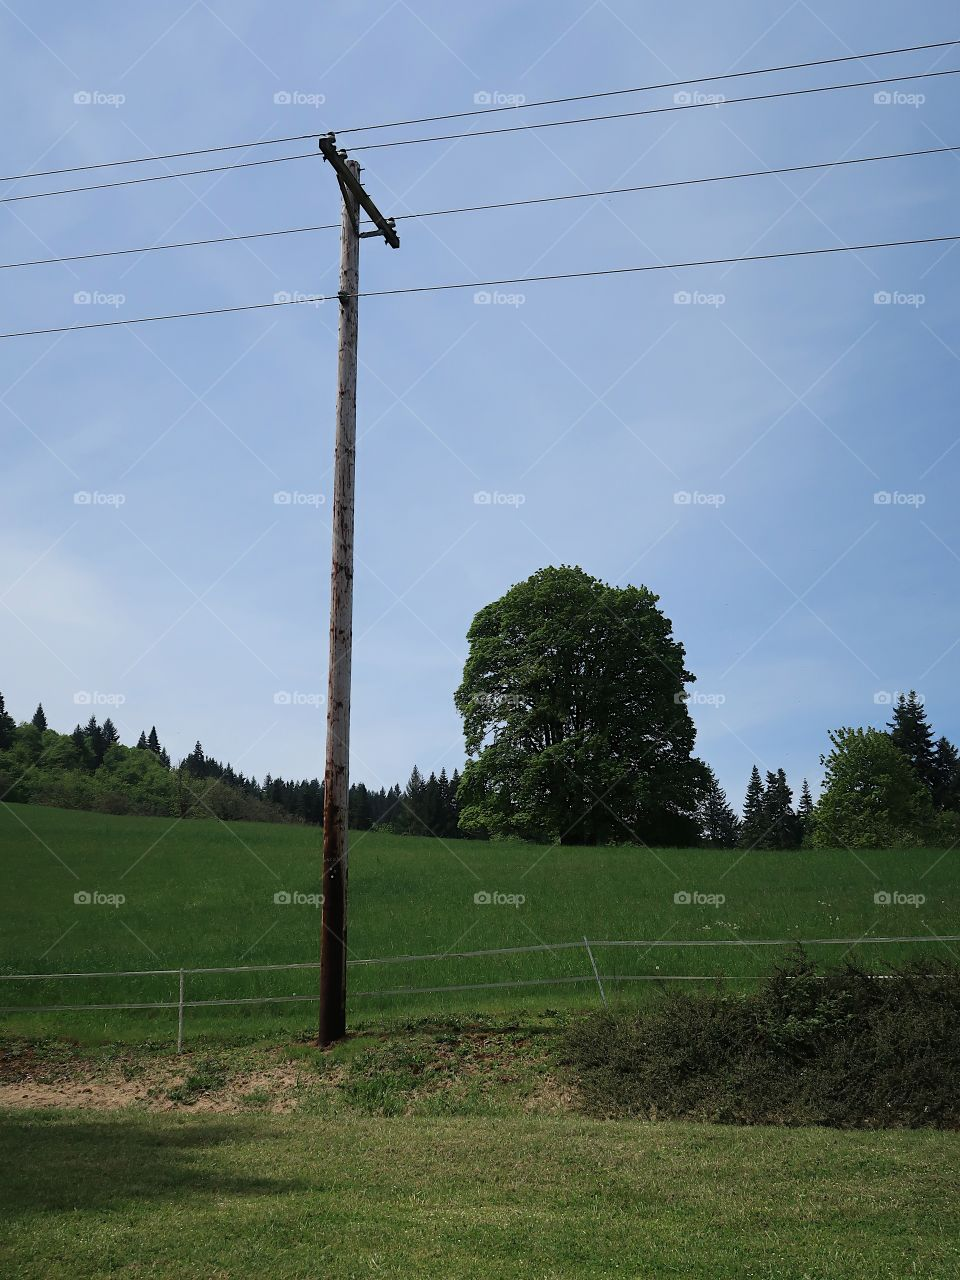 A power pole with a grand tree on a green hill in the background in Western Oregon on a sunny spring day.